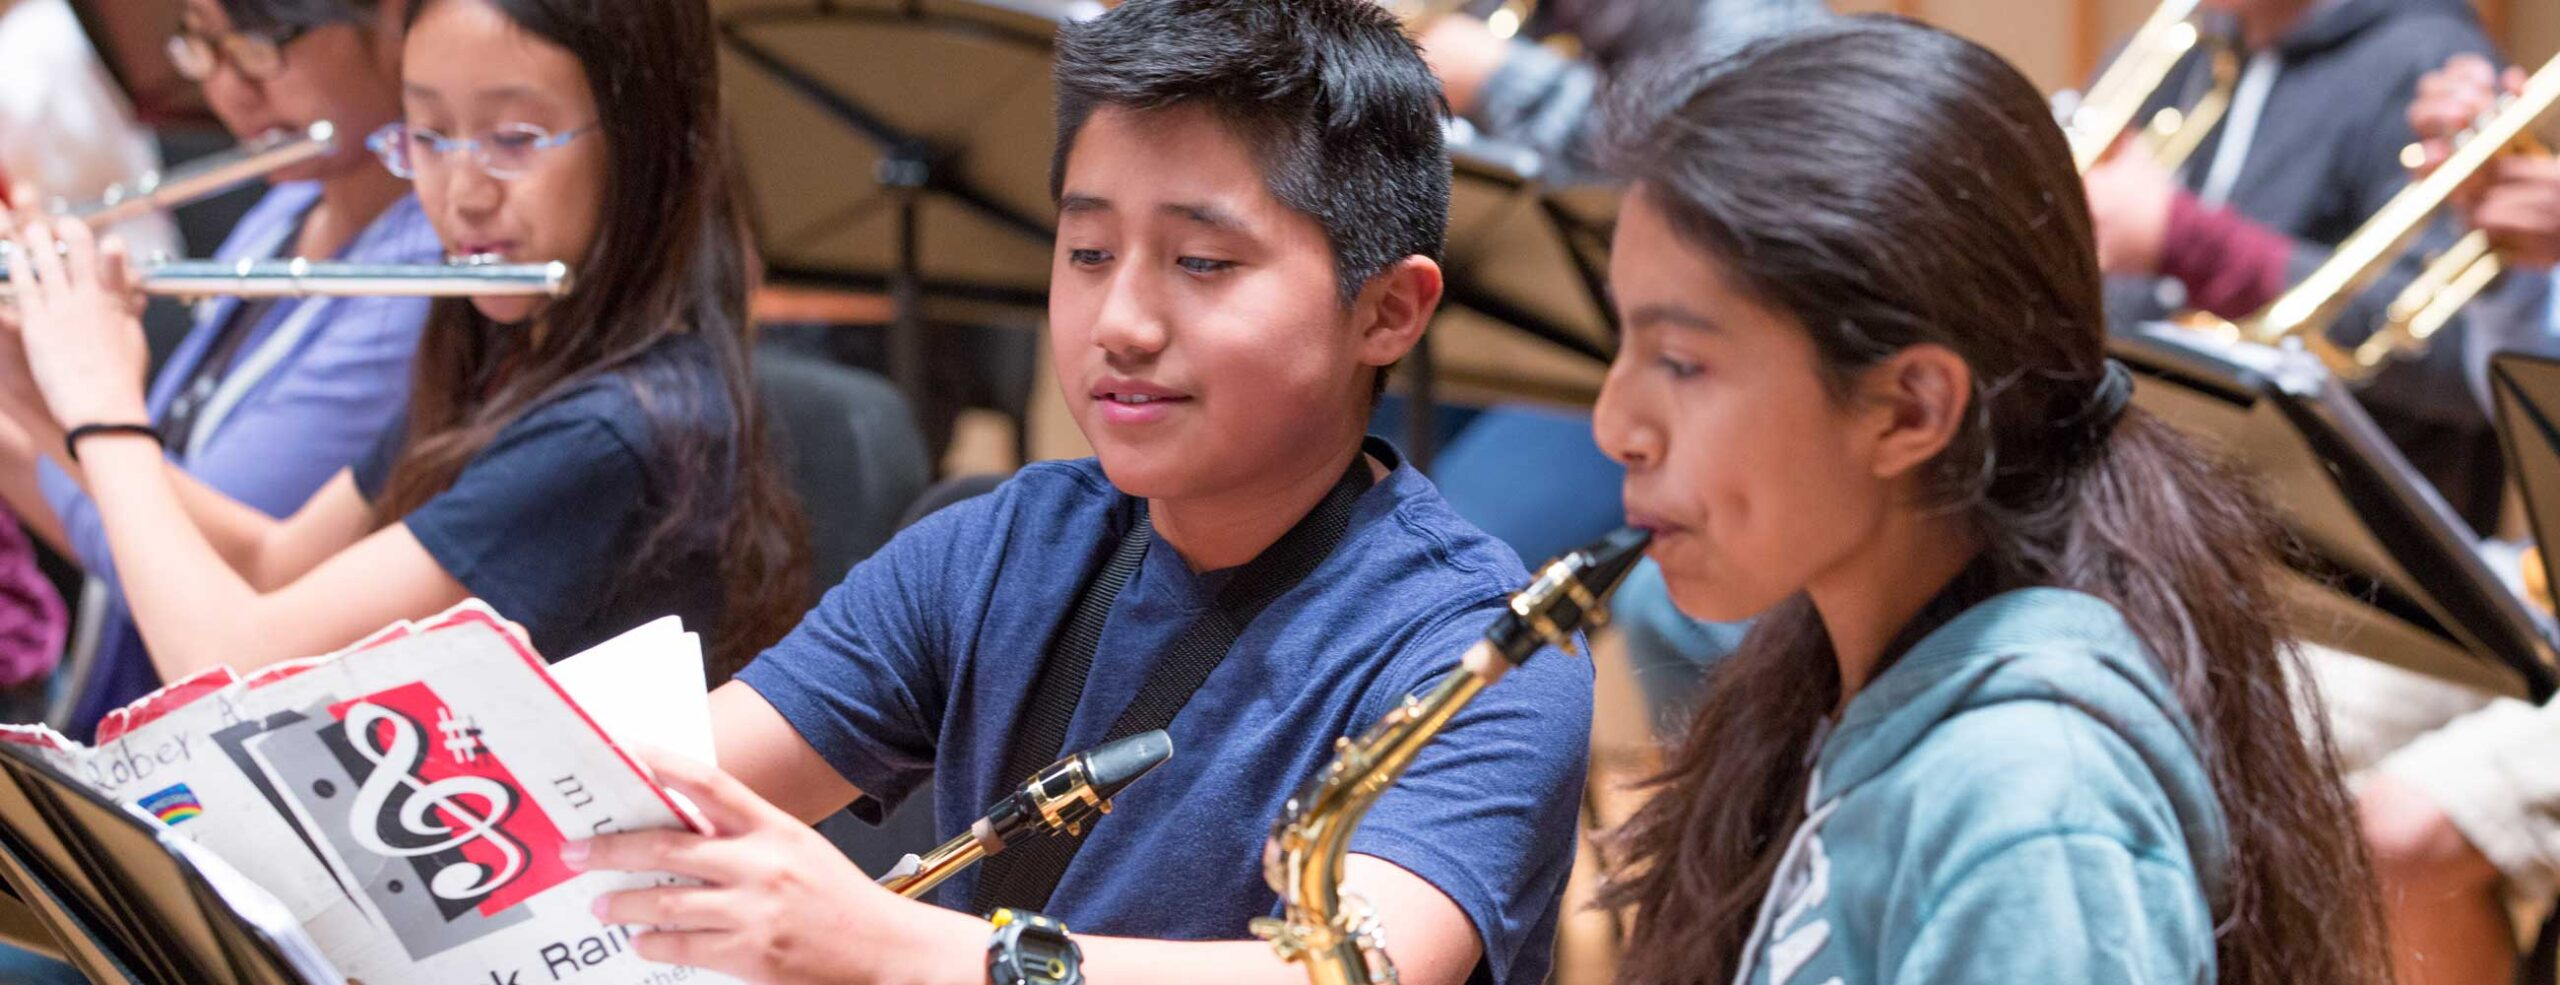 Two young saxophone students looking at music in rehearsal